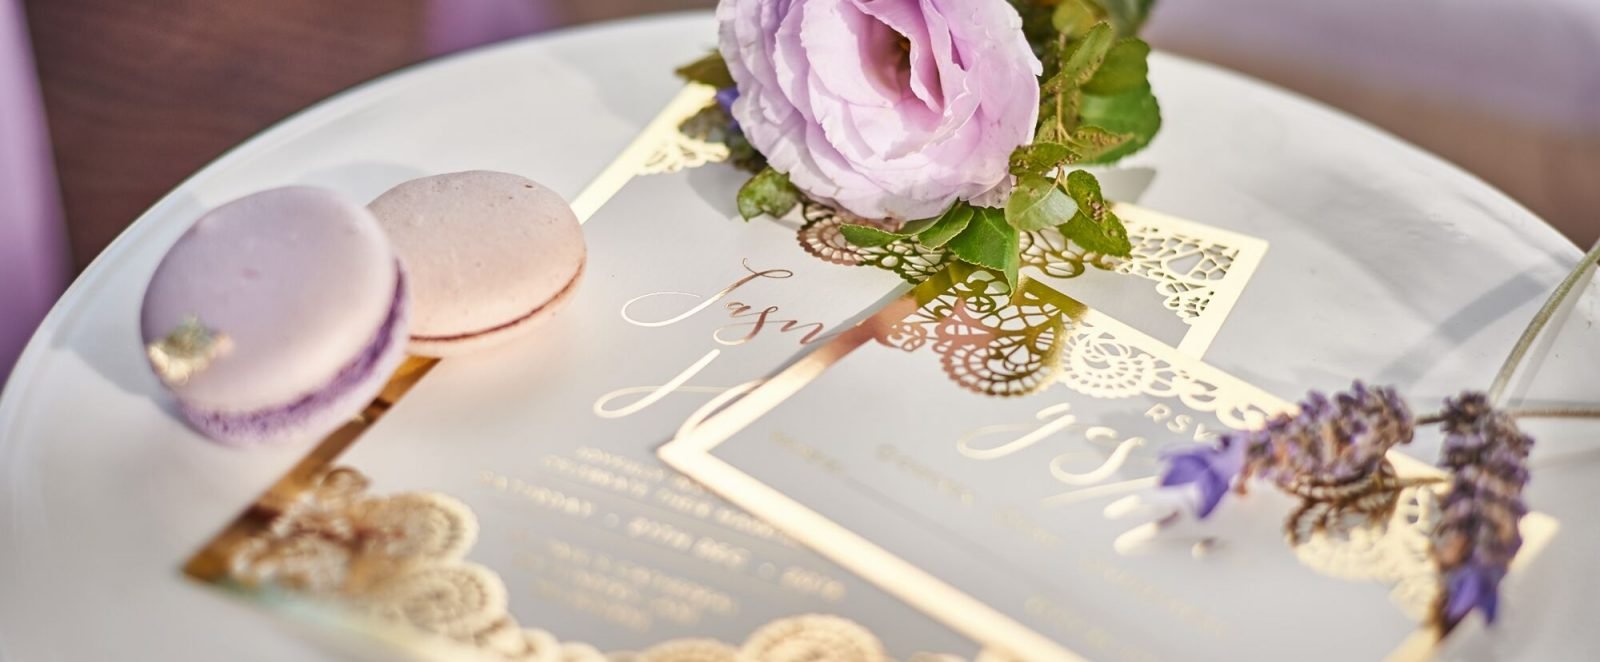 Adorn Invitations Inspirational Photo Shoot